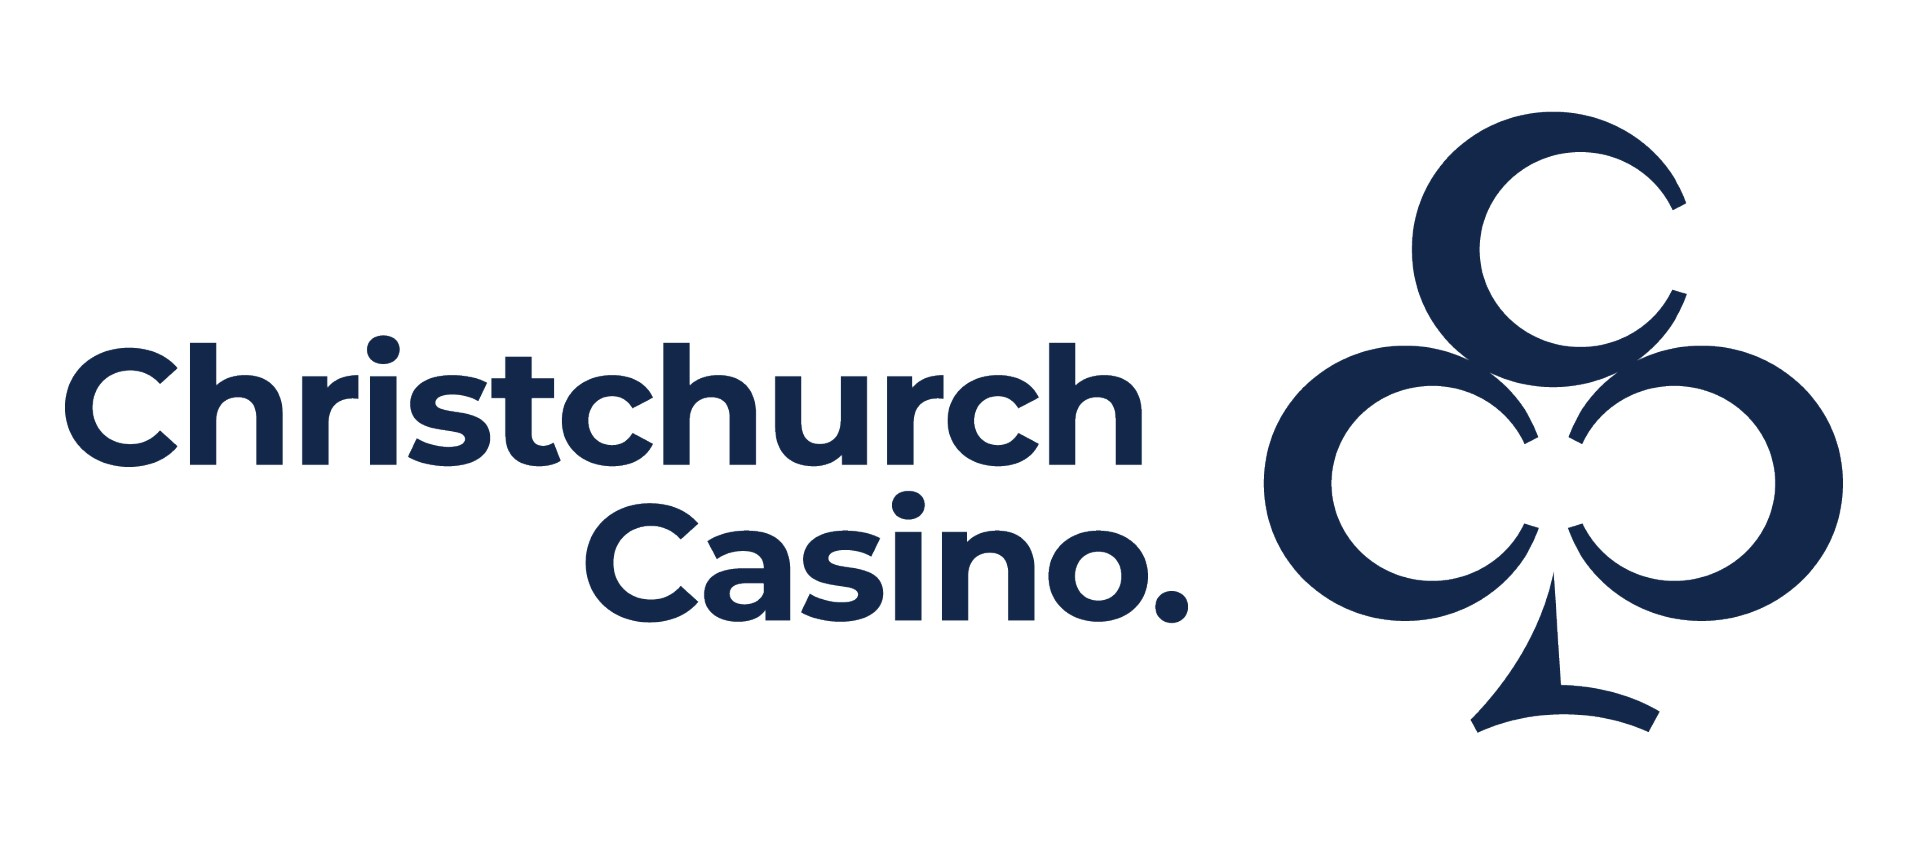 blue text christchurch casino outline of clubs symbol all on white background